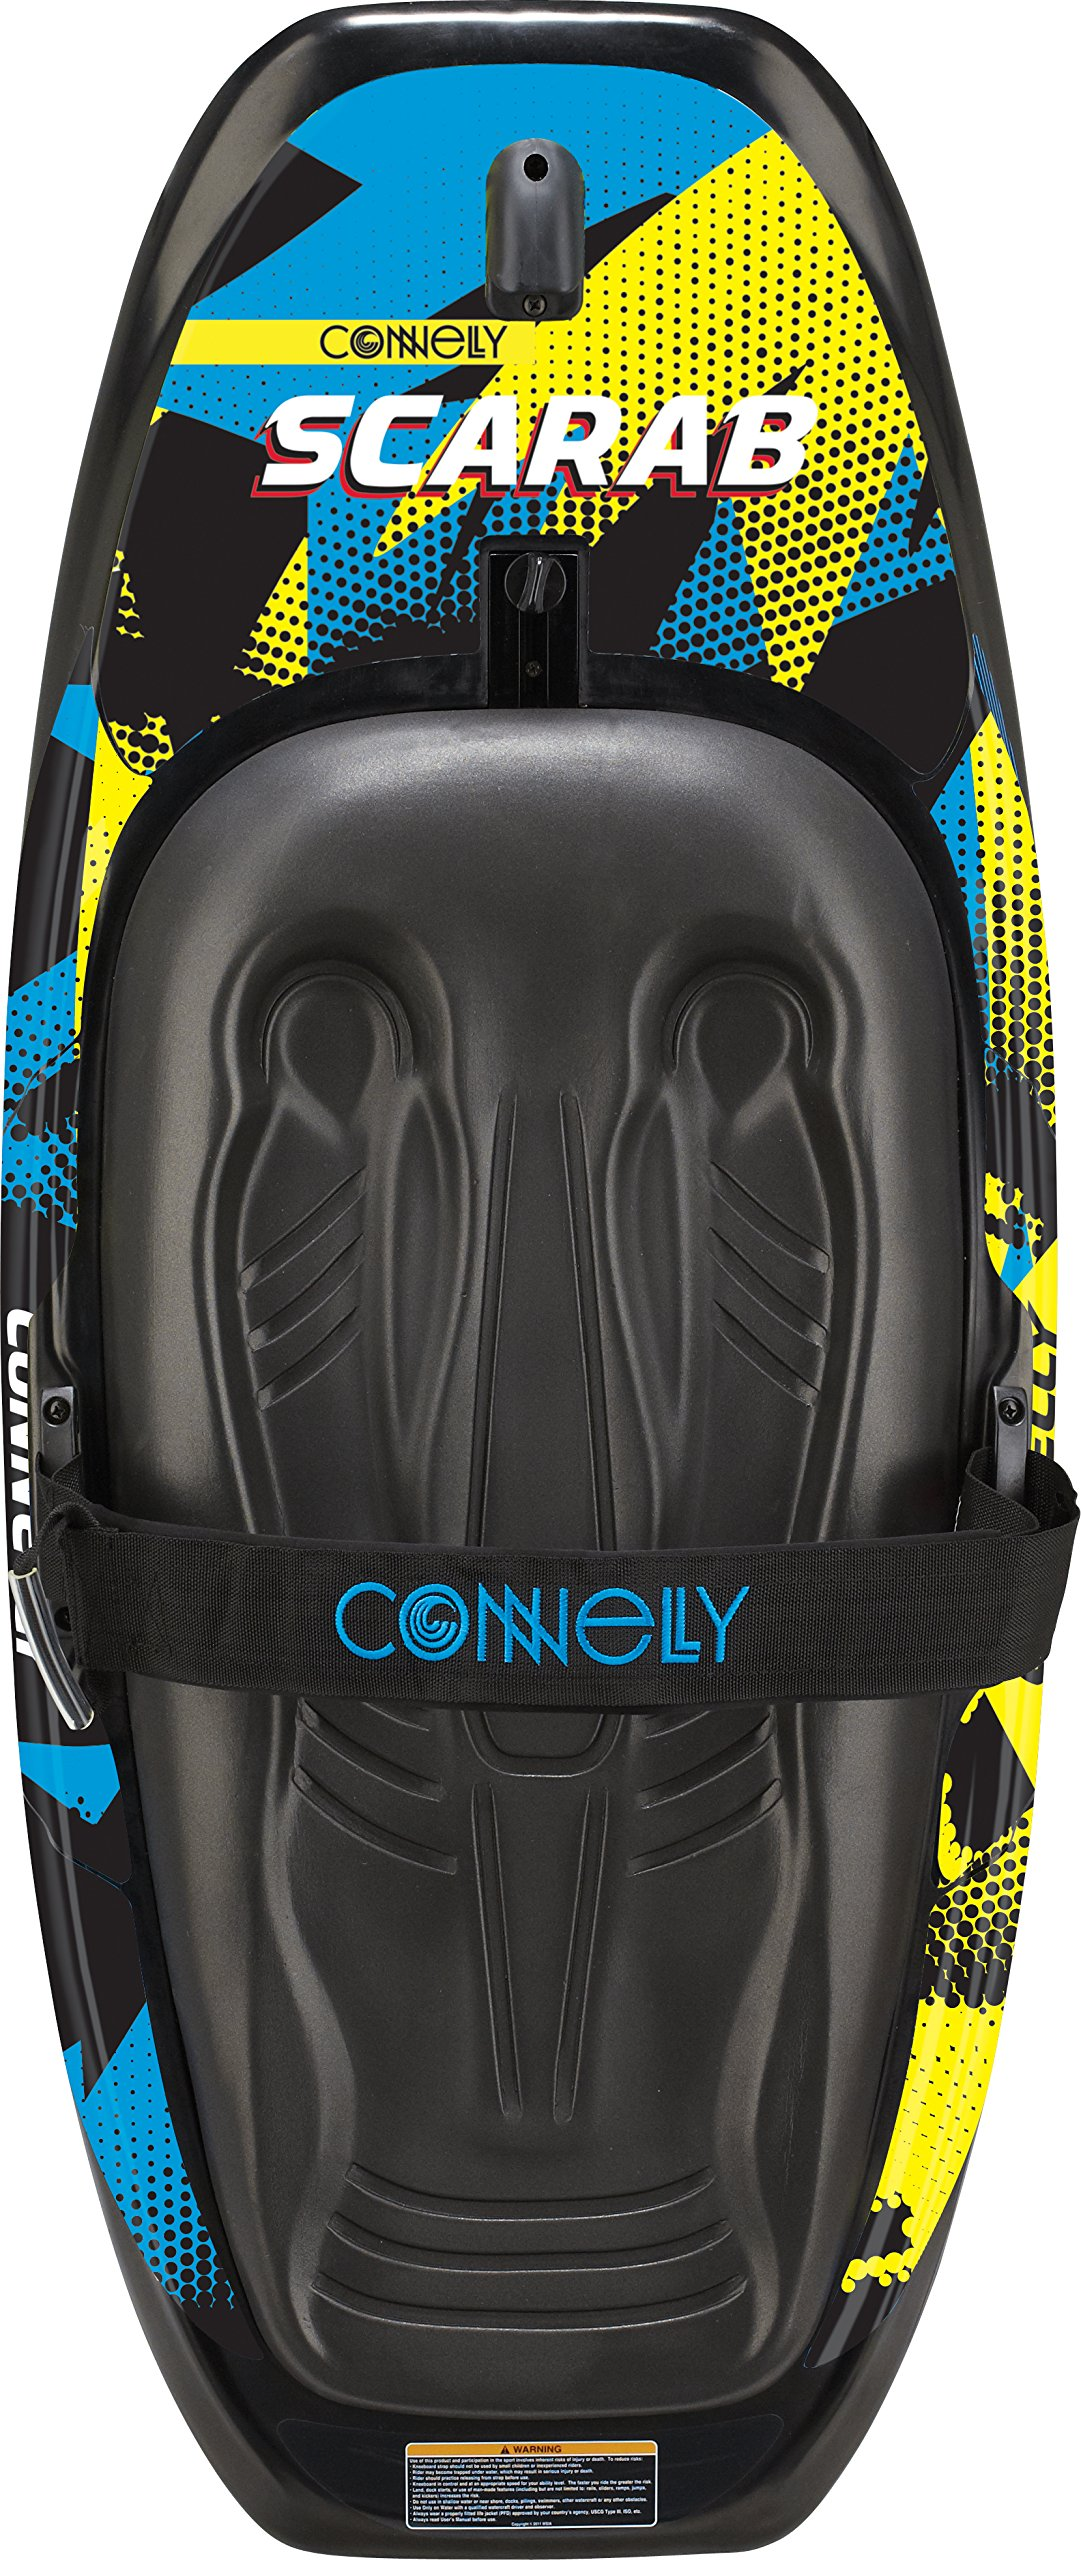 Connelly Skis Scarab Kneeboard